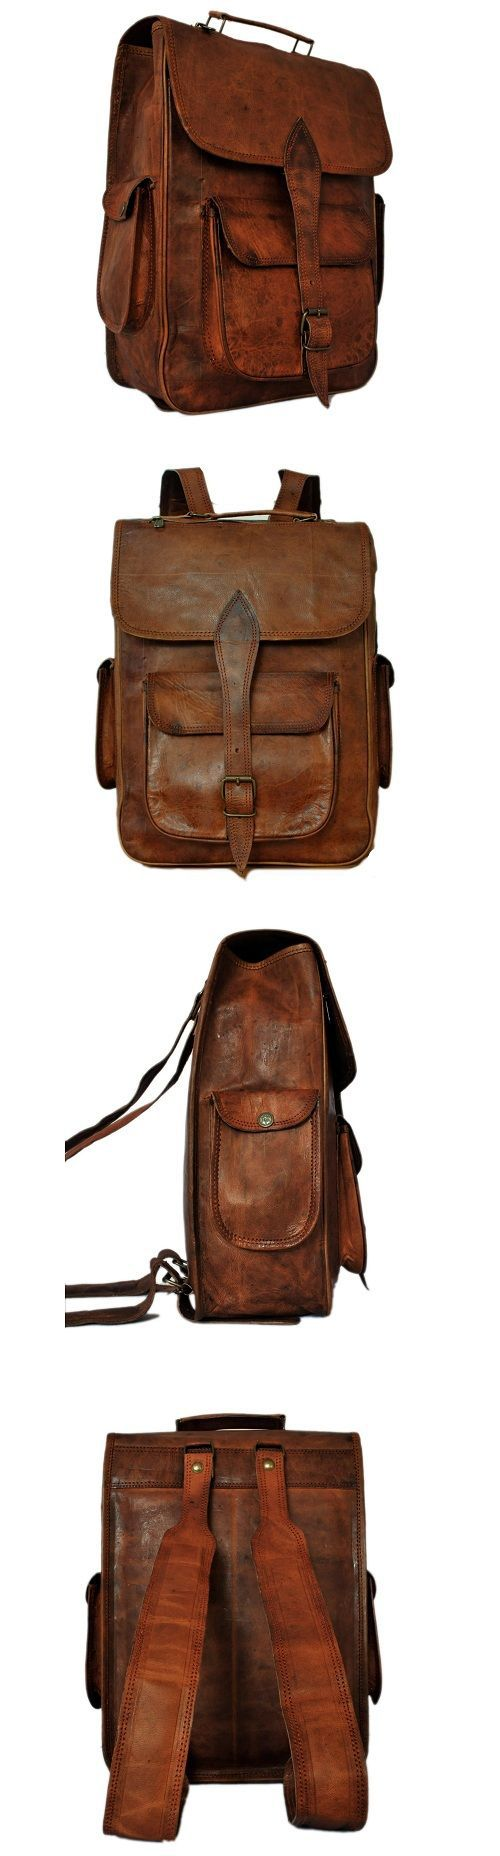 Small Genuine Leather Backpack for macbook which are handmade and handcrafted just for you in just 95$ with free shipping worldwide.